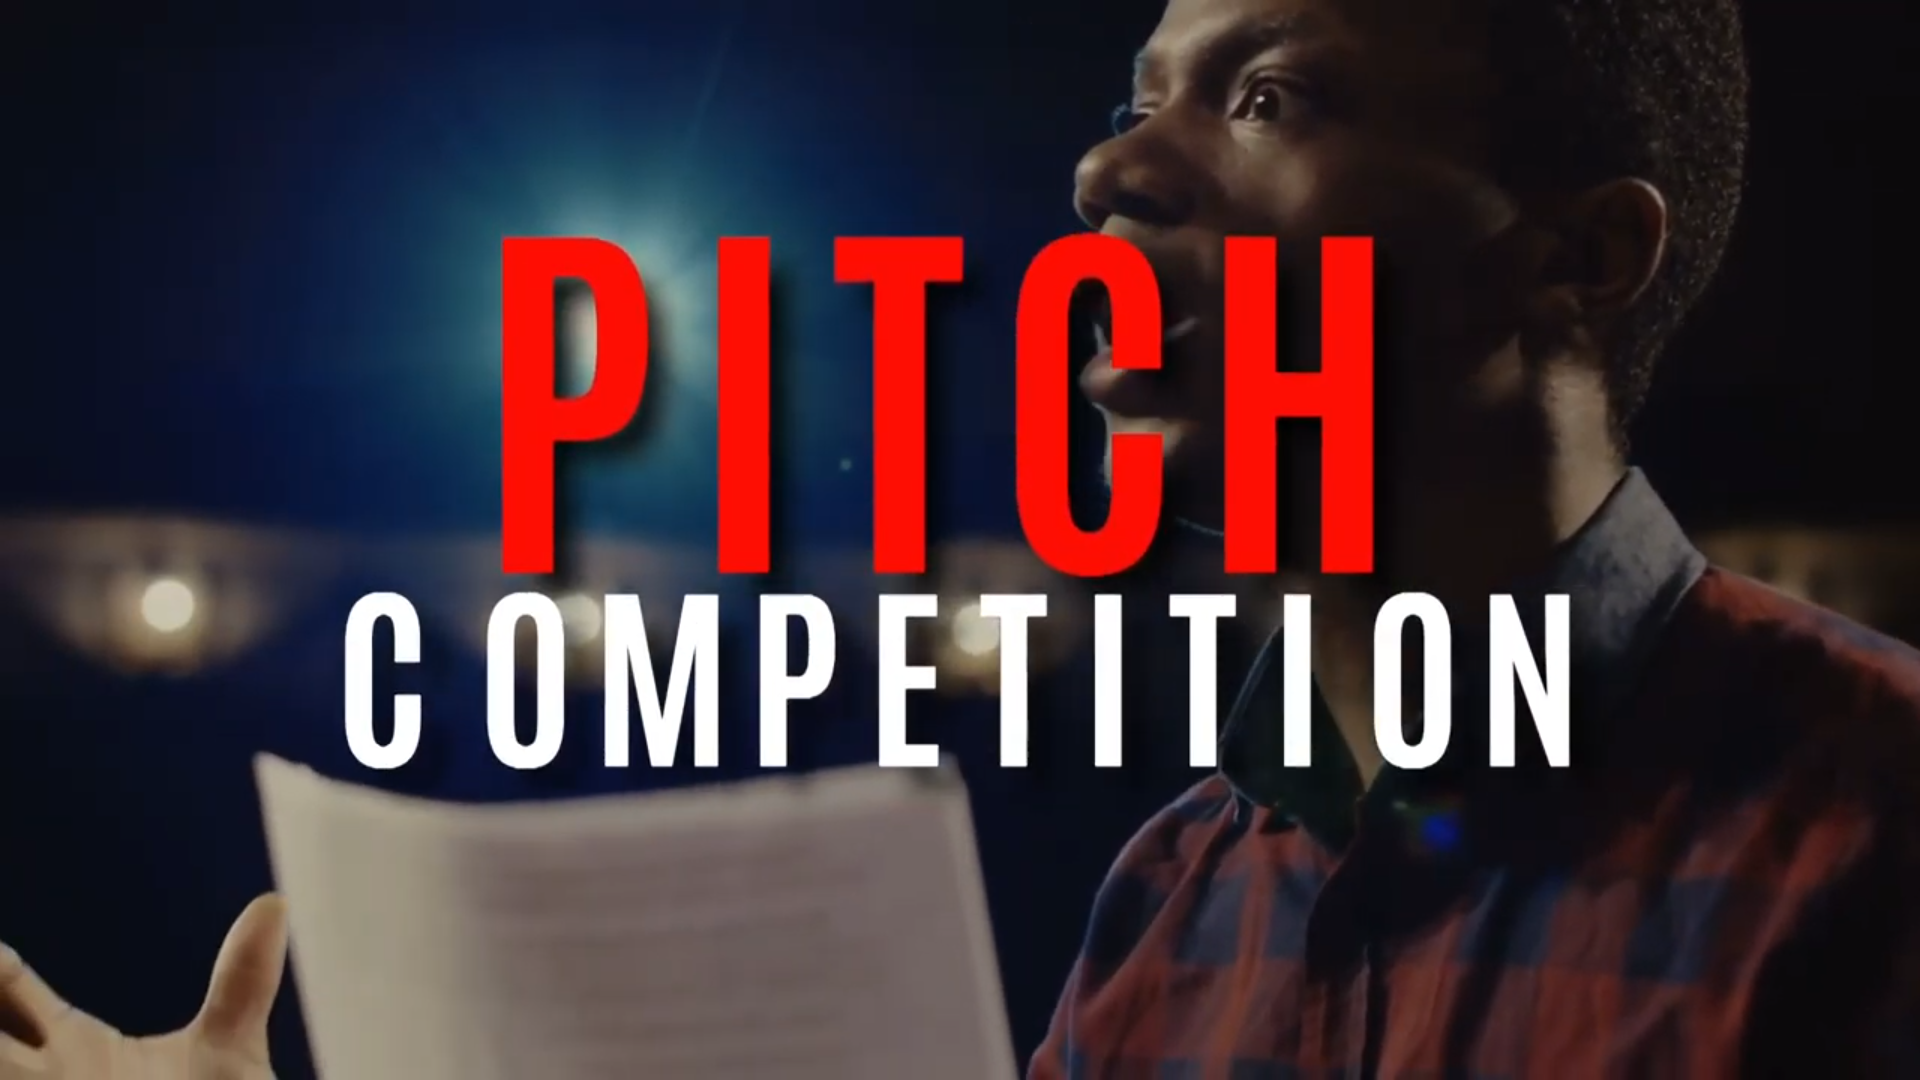 Pitch Competition! - You could win valuable prizes including - 1 year of office space and mentoring at Ch. 9 (Nine Network); $500 in gear rental from BorrowLenses; Free screening of your film at B&B Theatres; 1 Year of Gold Membership from Hurlbut Academy; An All-Access Pass to St. Louis International Film Festival; Free Entertainment Law Legal Services from Jay Kanzler of Witzel, Kanzler & Dimmitt; and Opportunity for producers to set up follow up meetings with your project. You could also just learn how others pitch. Ordering instructions are on the Pitch Competition page.